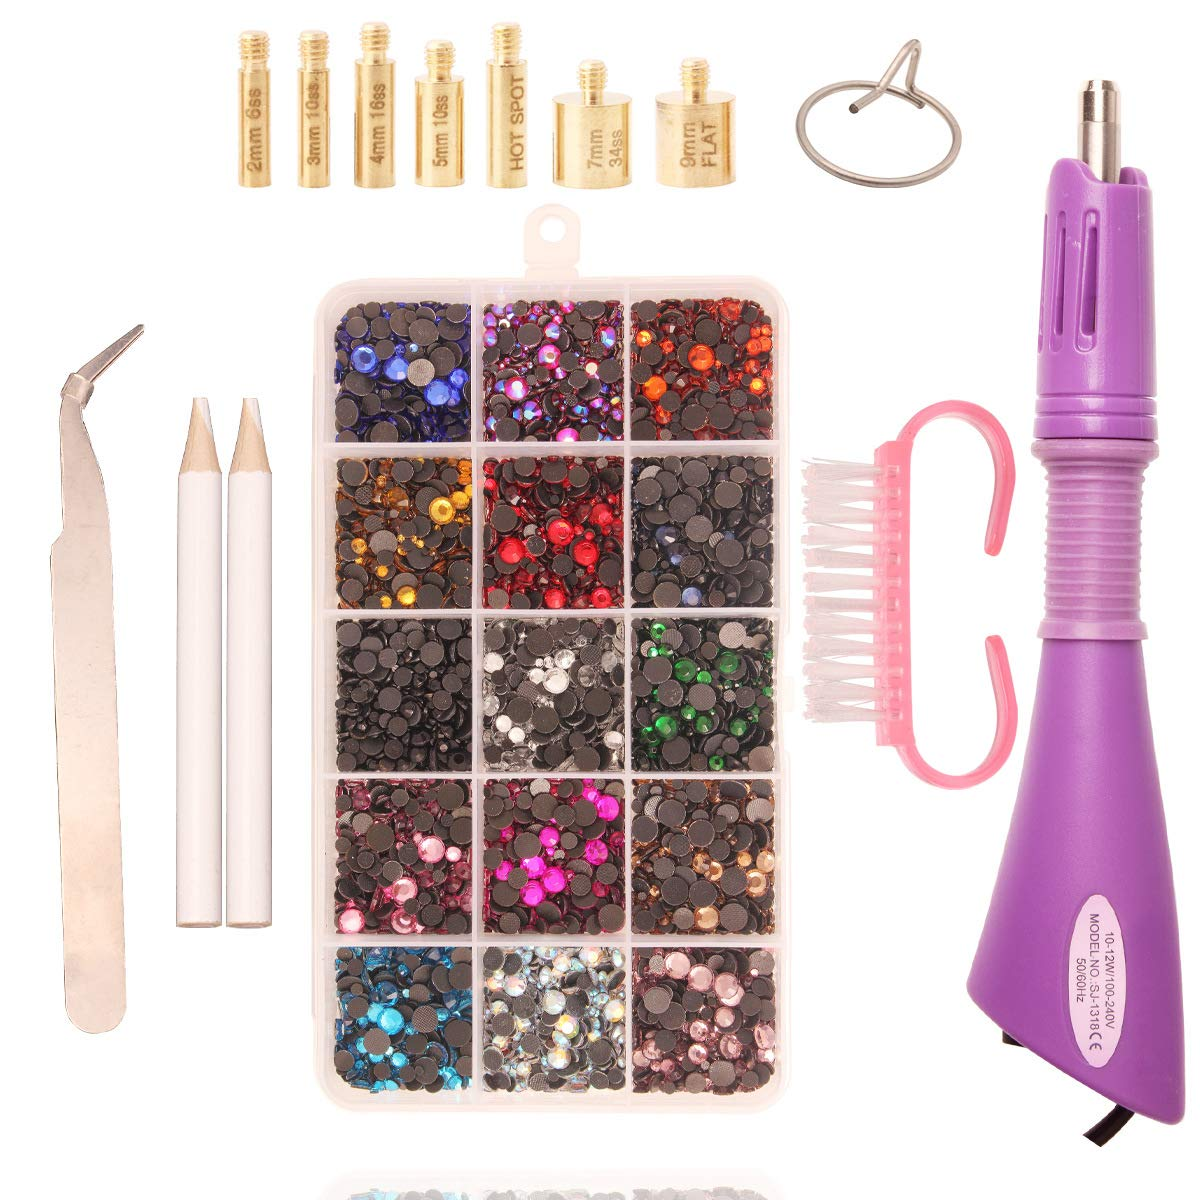 Hotfix Applicator, DIY Flatback HotFix Glass Rhinestone Applicator Wand Setter Tool Kit with 5 Different Sizes Tips, Tweezers & Brush Cleaning kit and 12000pcs Pack Hot-Fix Crystal Rhinestones by Meicry beads